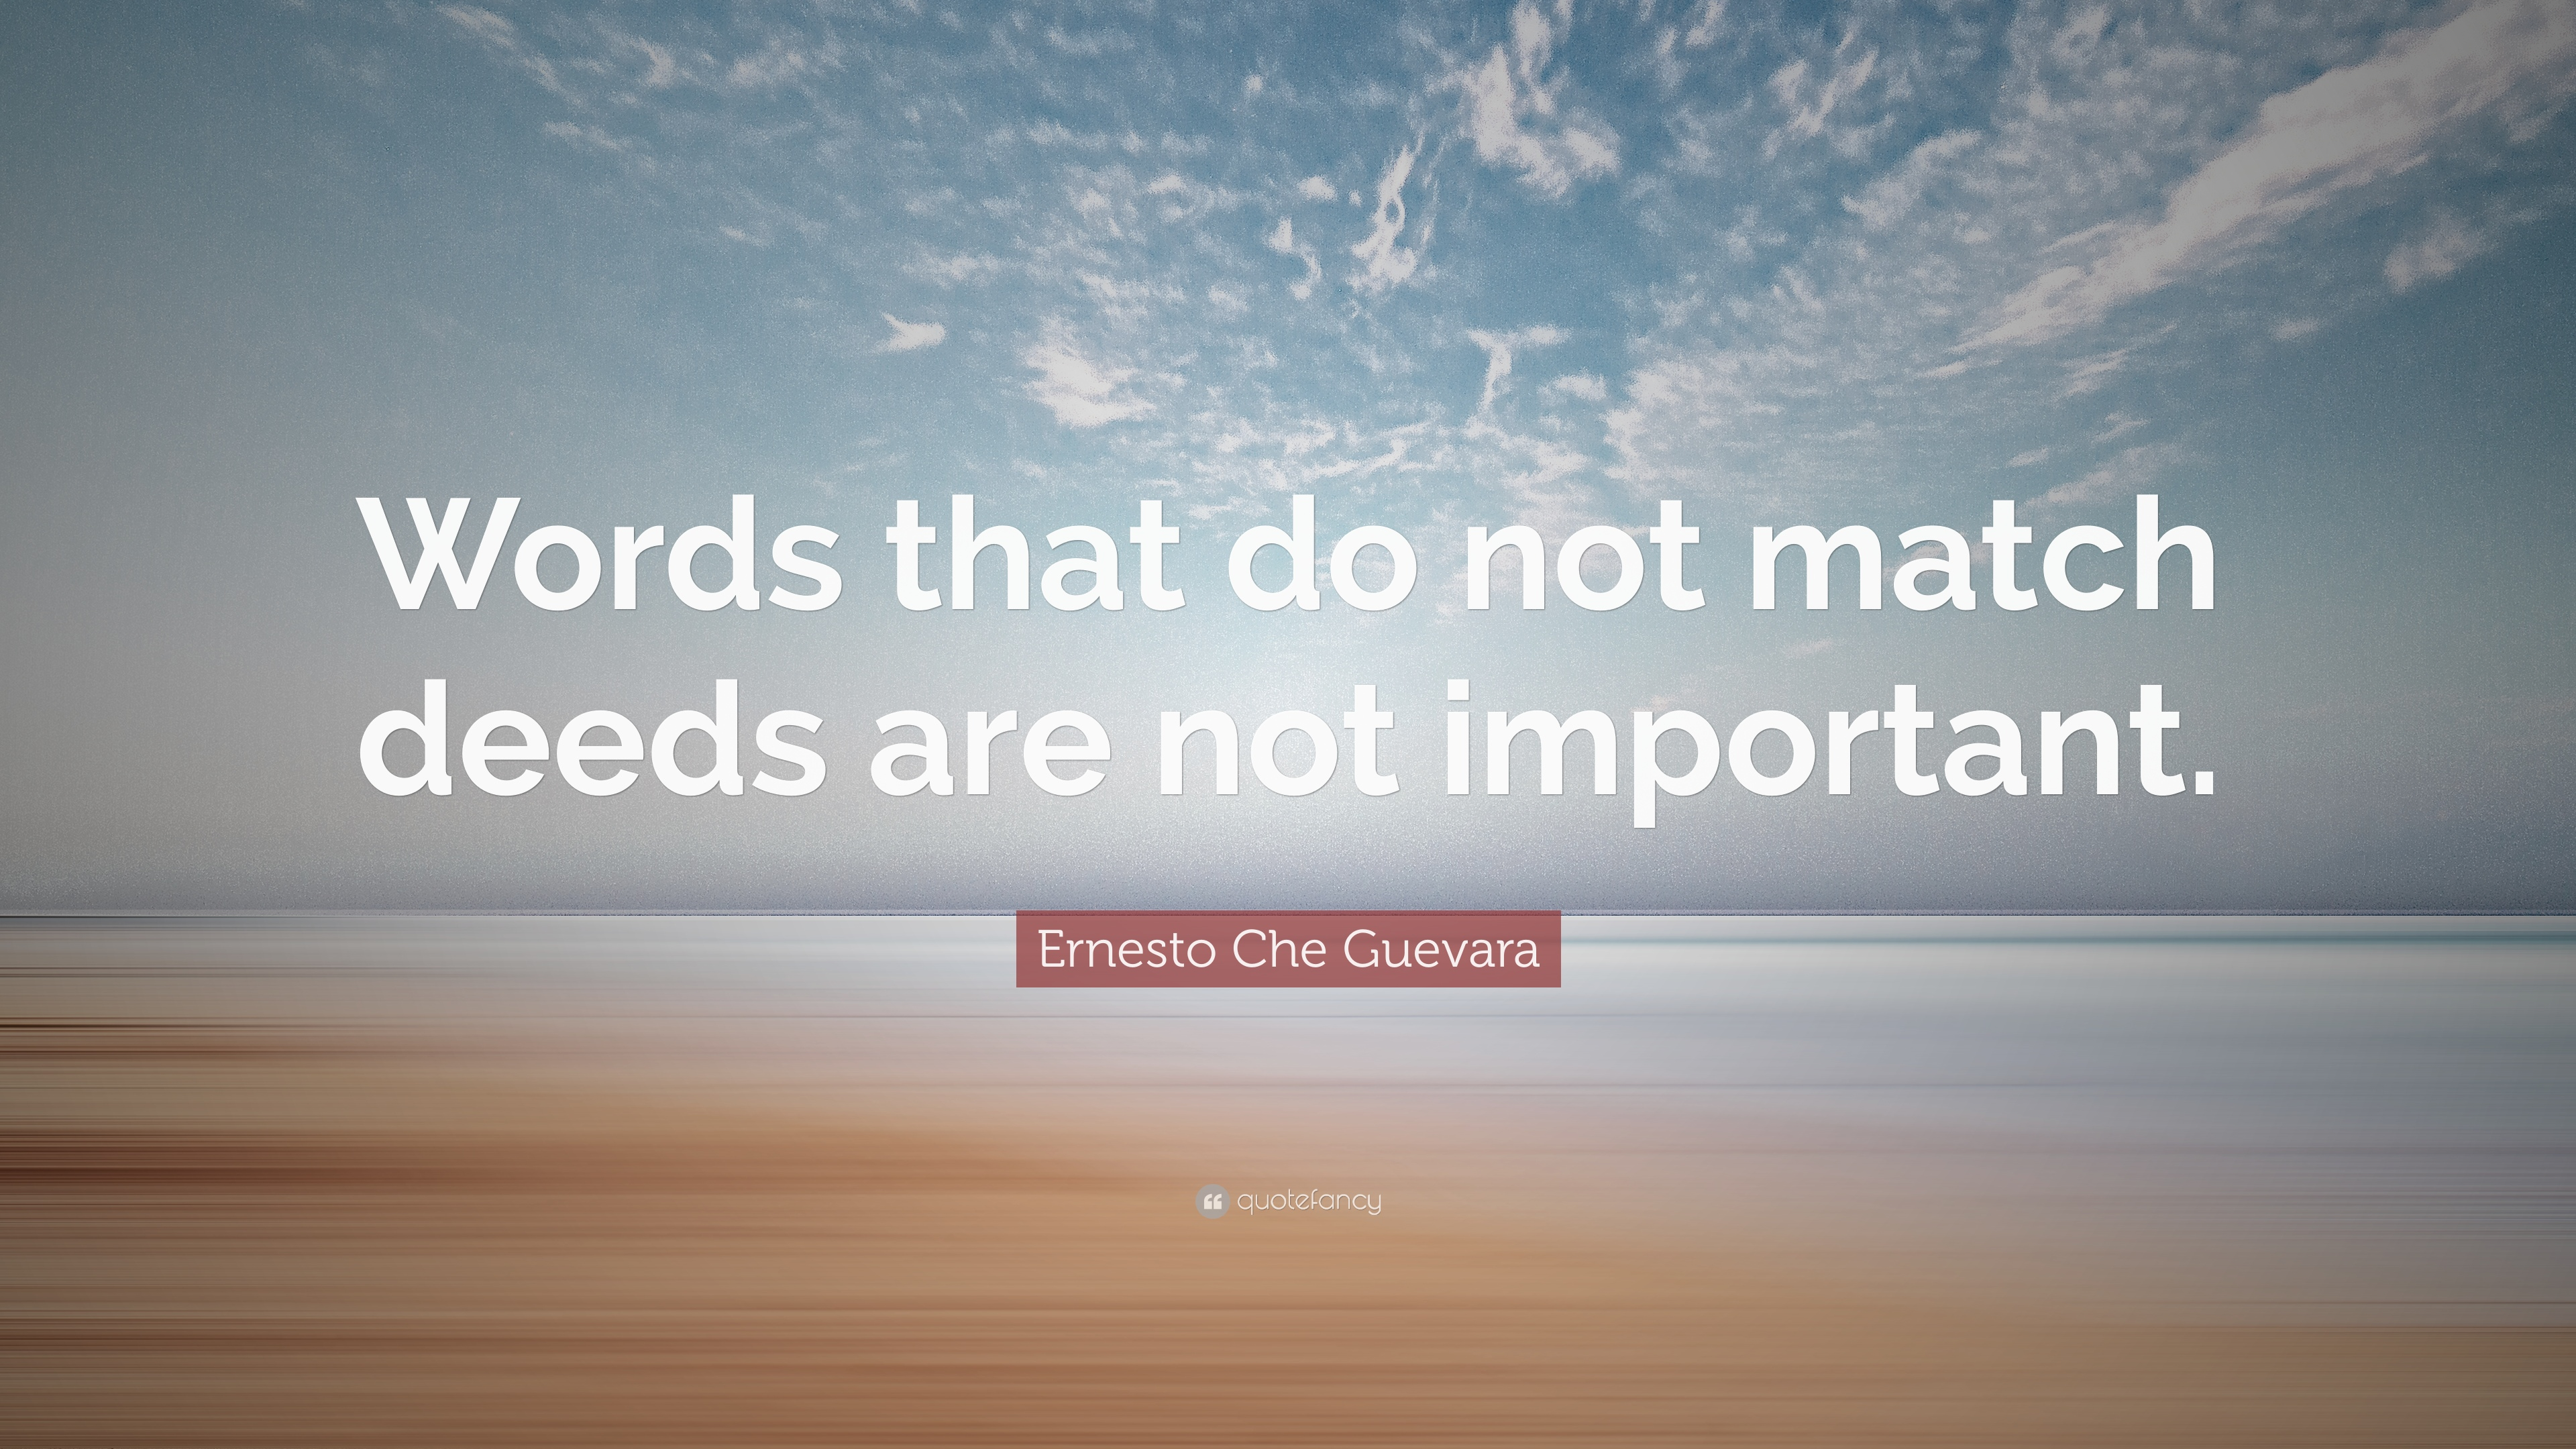 Ernesto Che Guevara Quote Words That Do Not Match Deeds Are Not